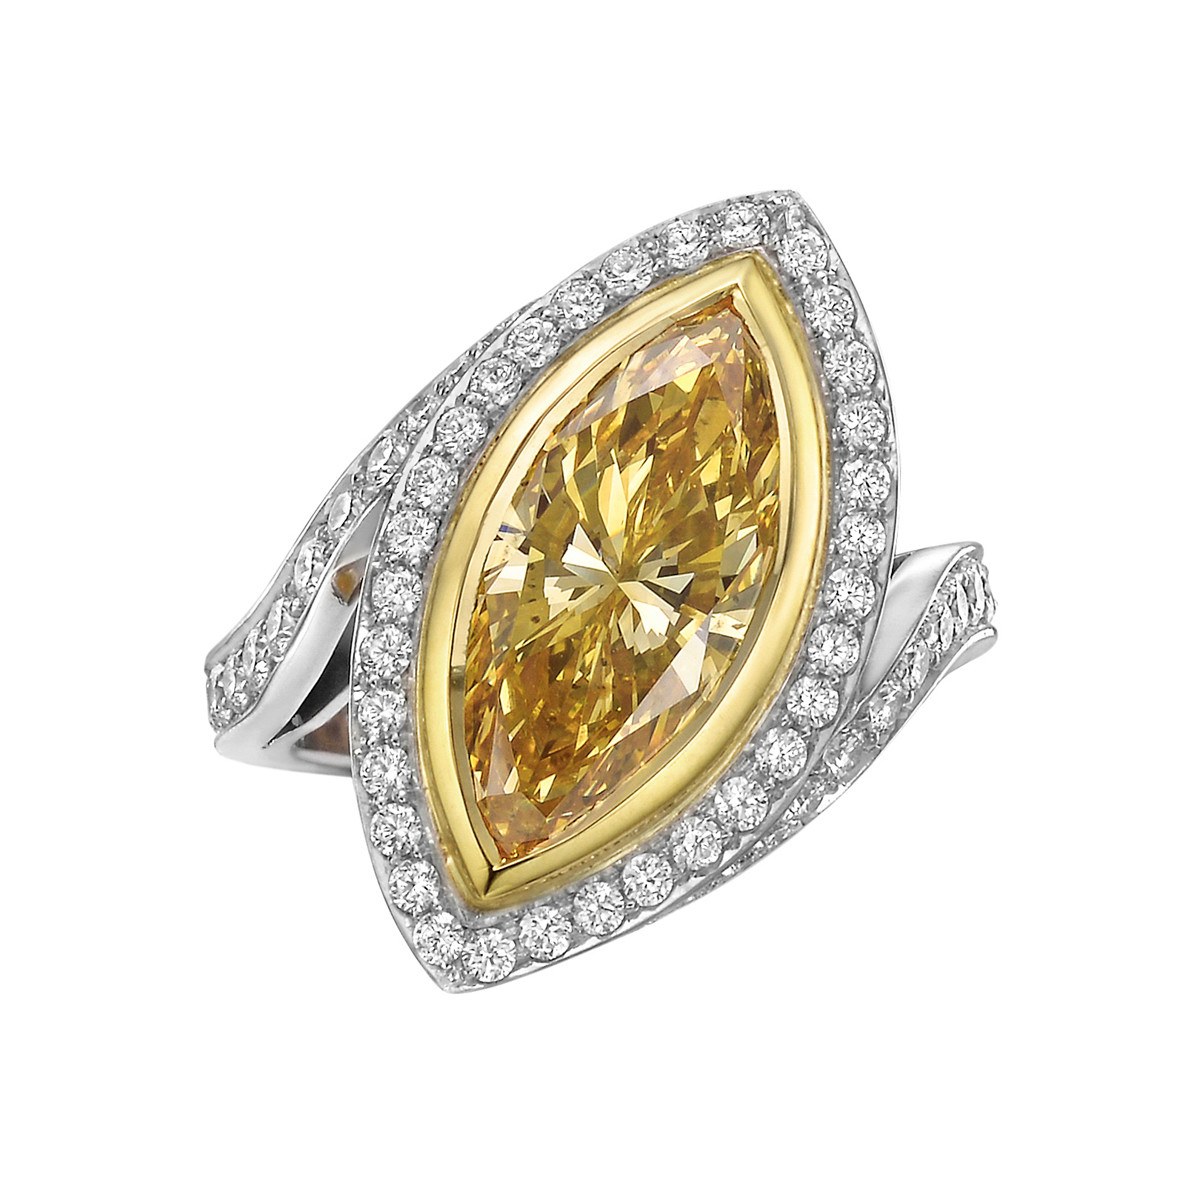 3.39ct Fancy Intense Orange-Yellow Diamond Ring